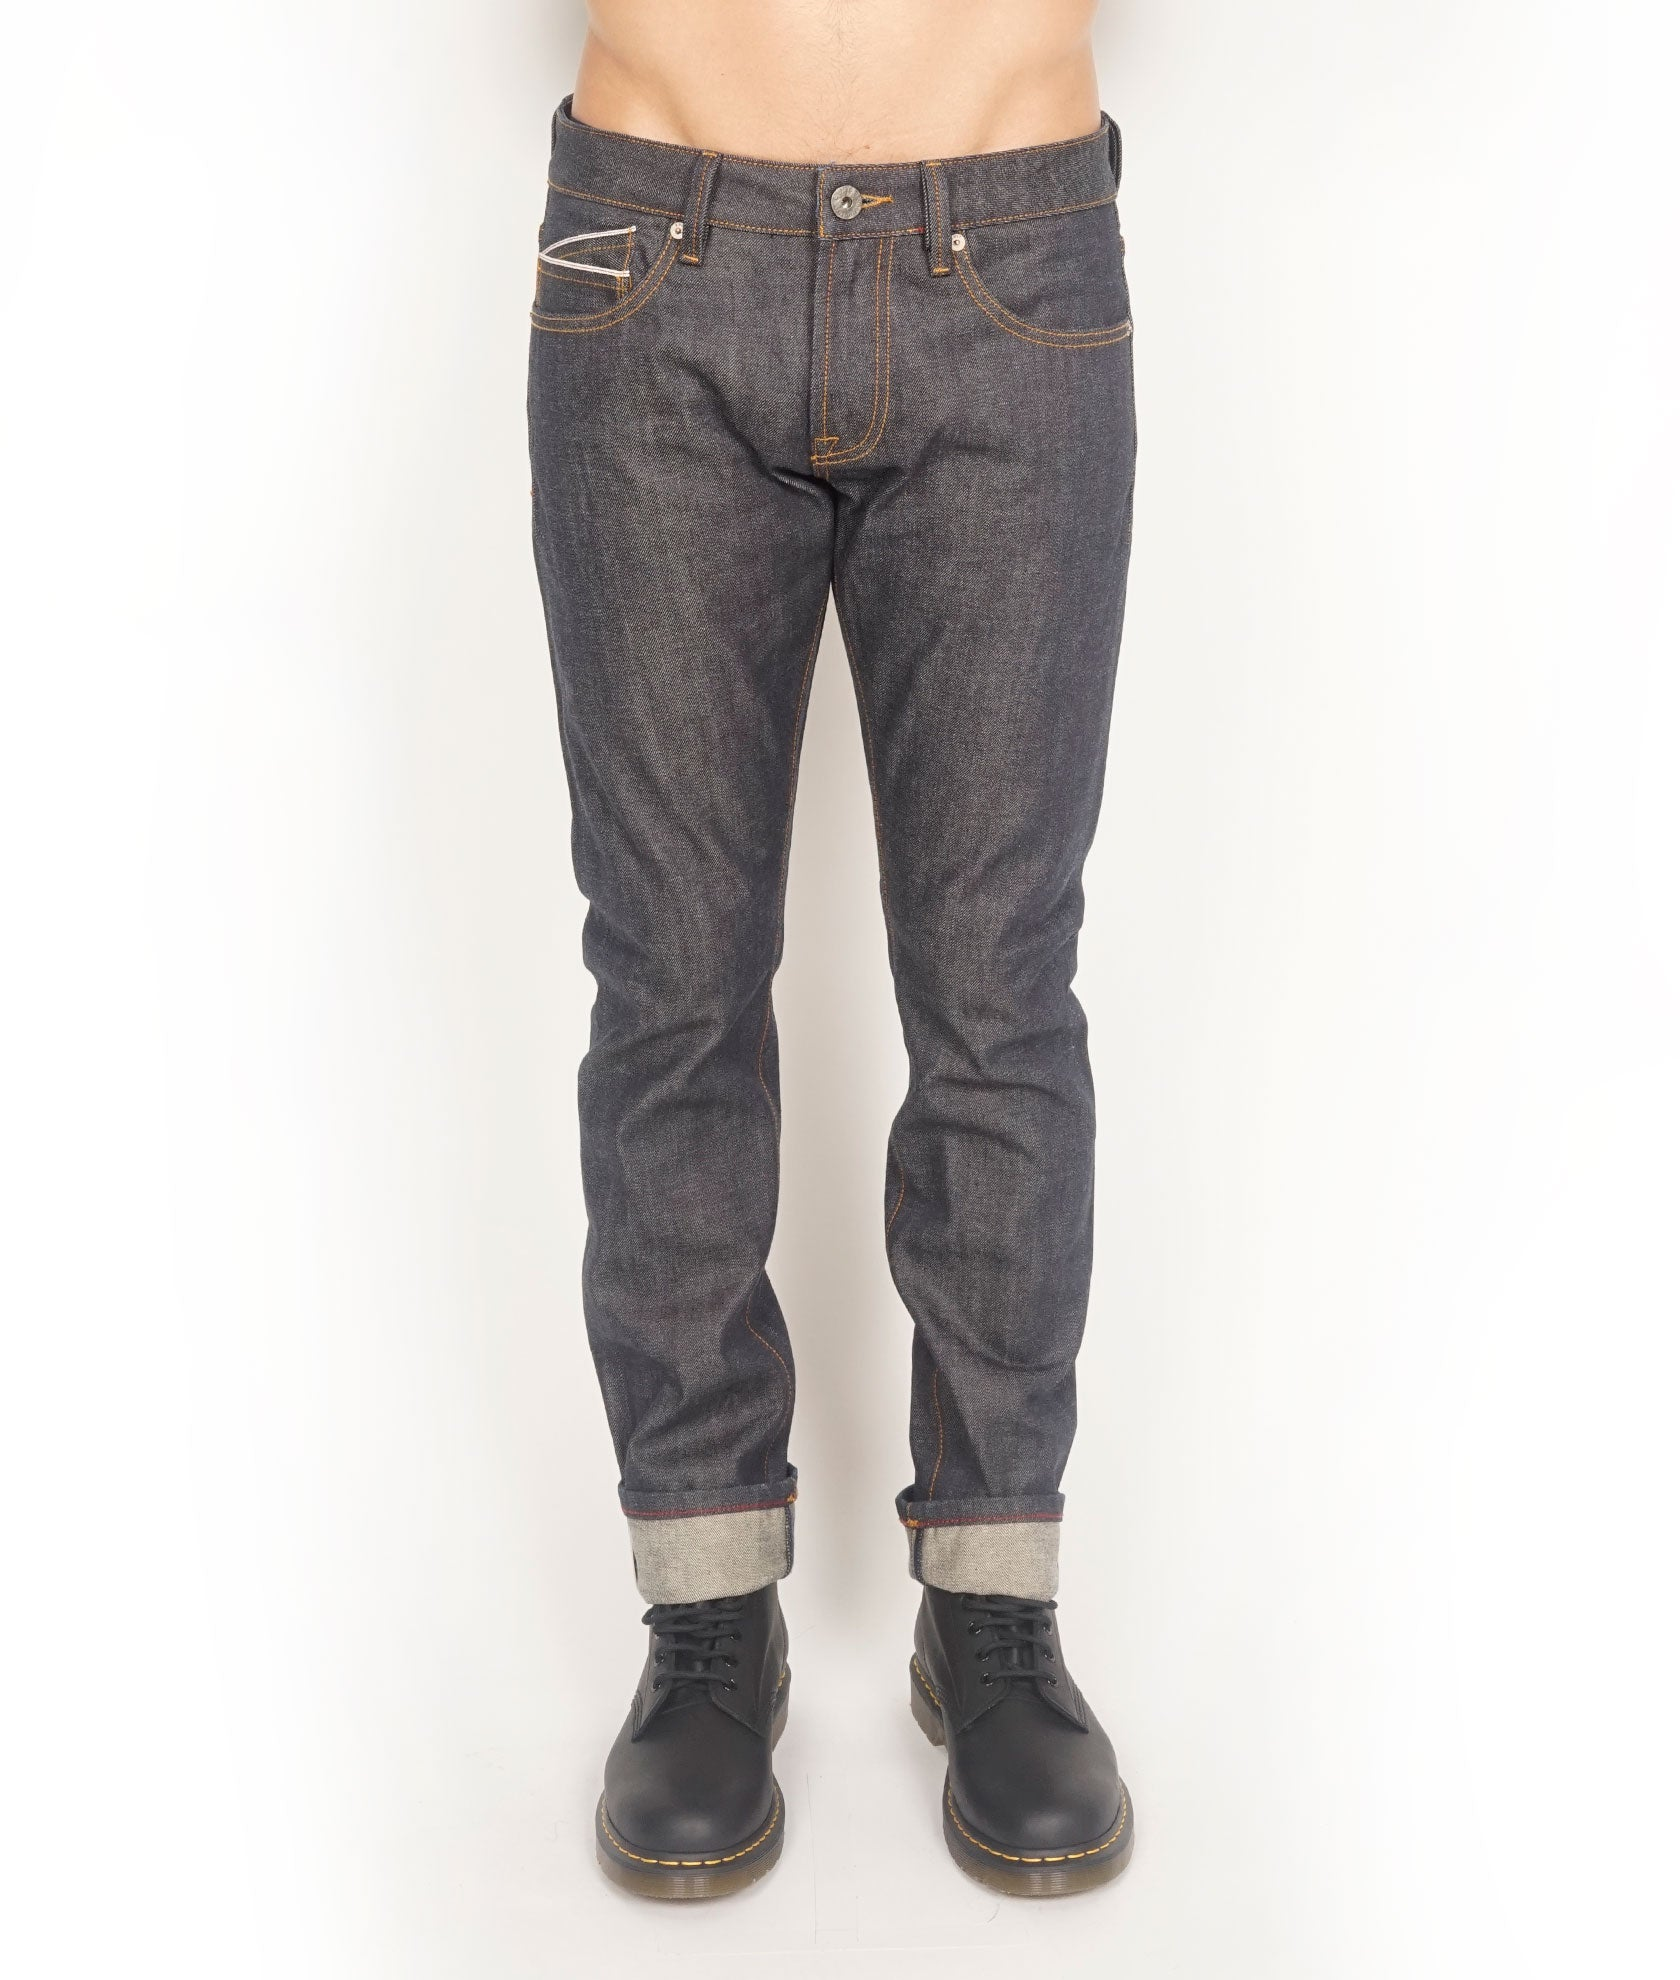 Men's Rocker Slim Denim Jeans in Dry${product_sku}